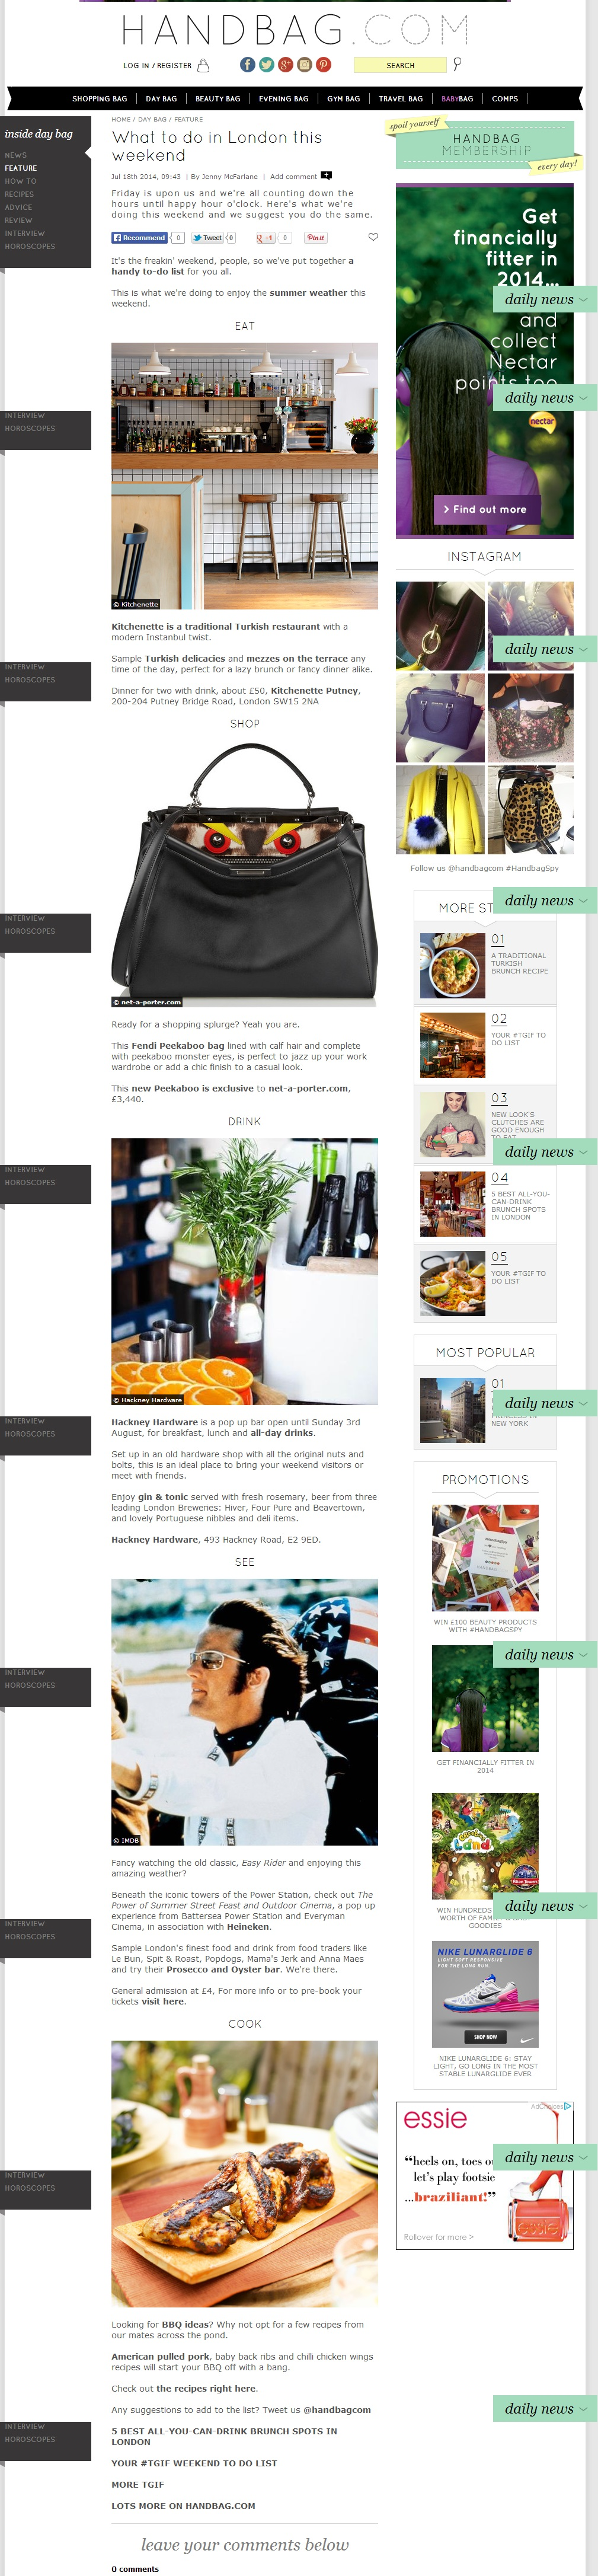 screencapture-www-handbag-com-day-bag-feature-a424034-what-to-do-in-london-this-weekend-html (1)